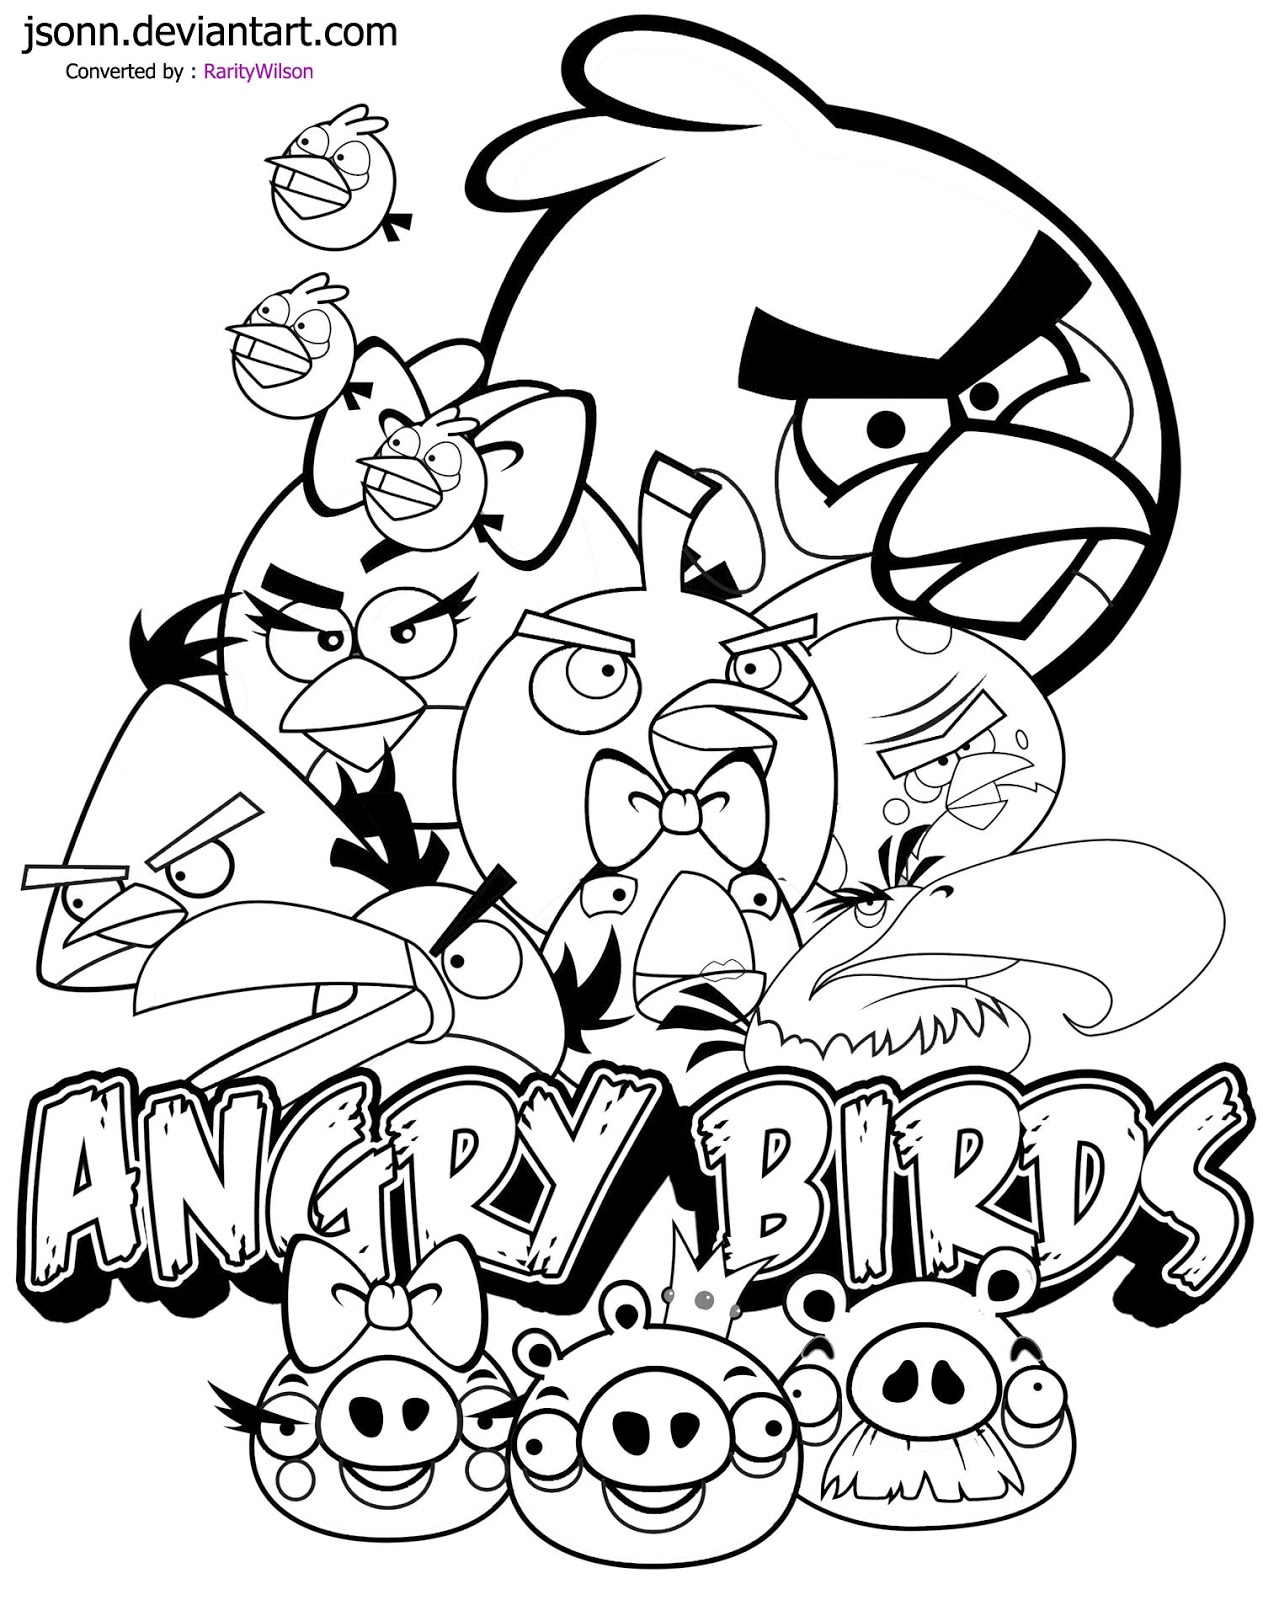 Free Angry Birds Coloring Pages